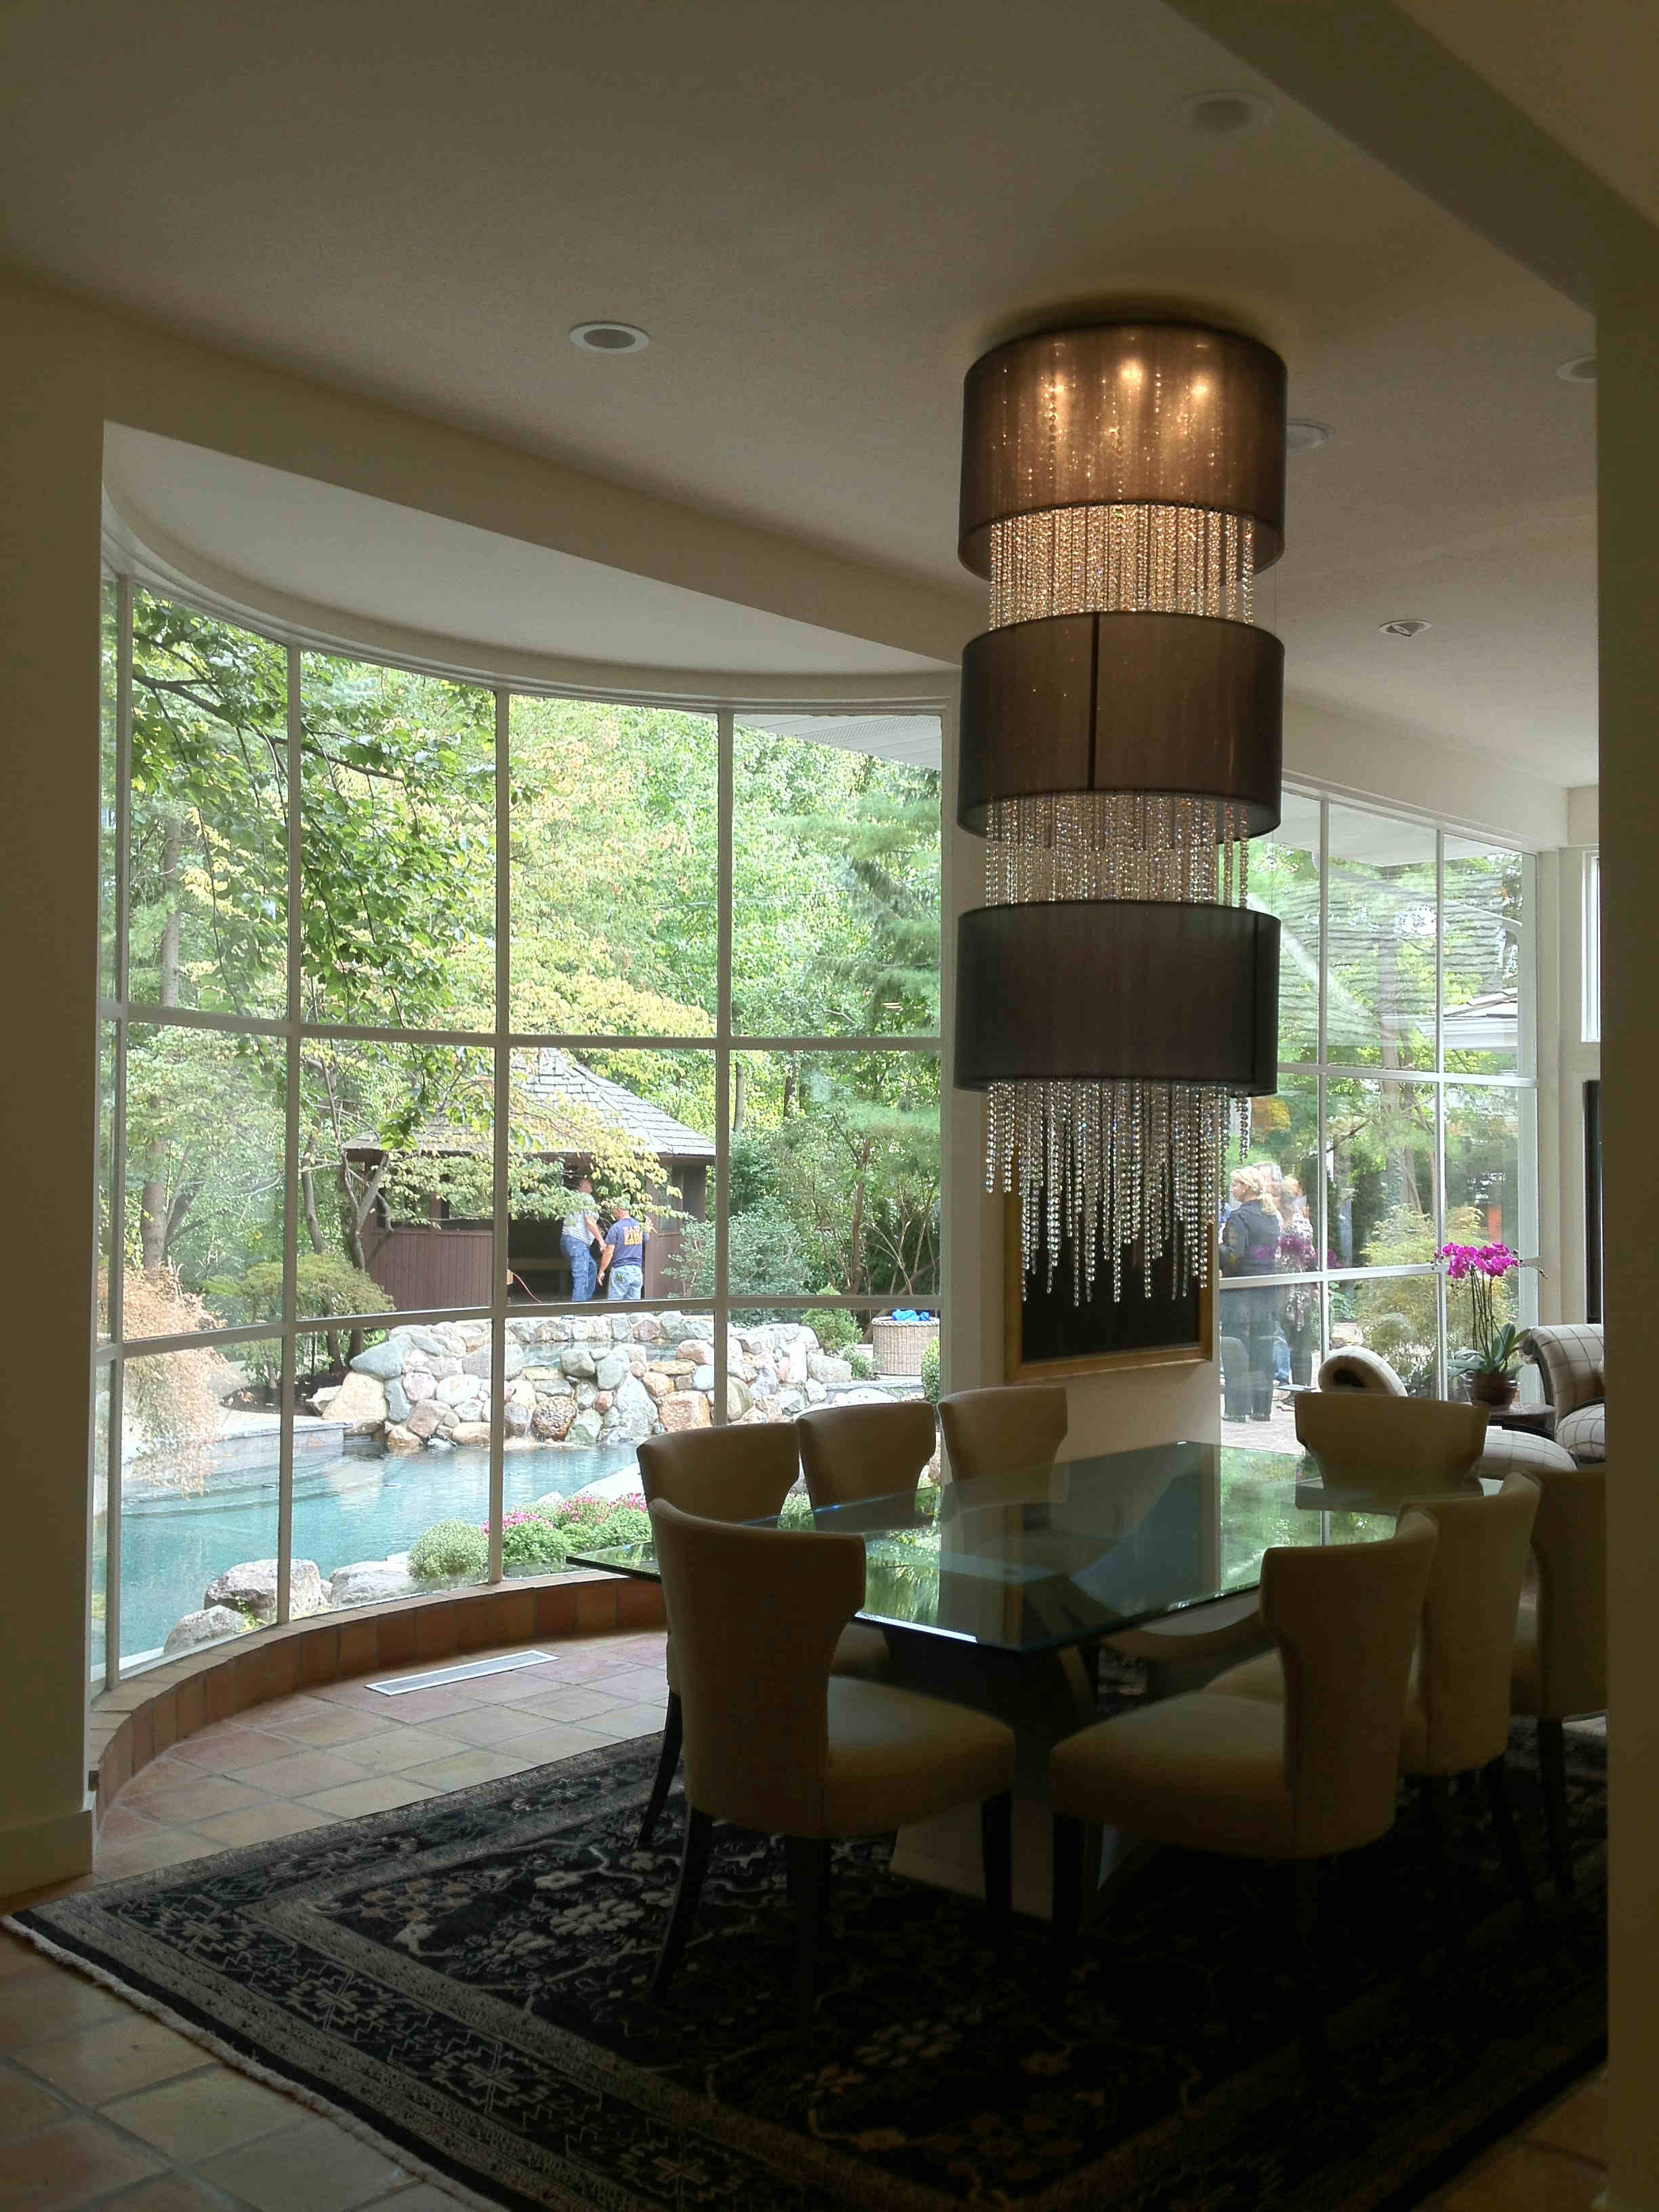 Foyer Lighting Measurements : Crystal chandeliers room lighting ideas glow